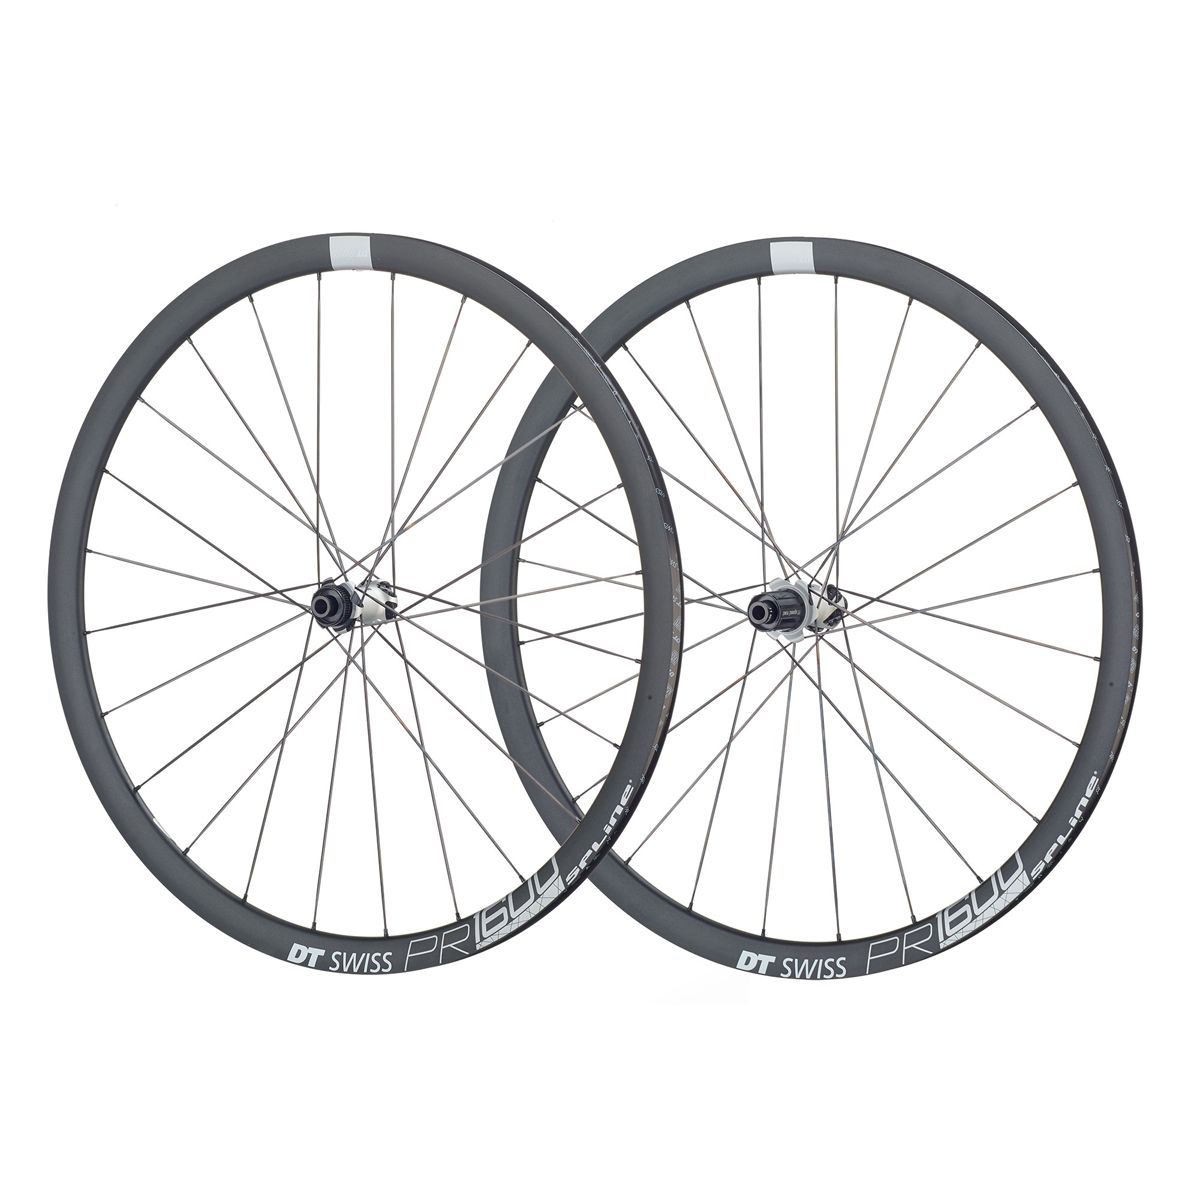 PR 1600 Spline 32 db road wheels 28